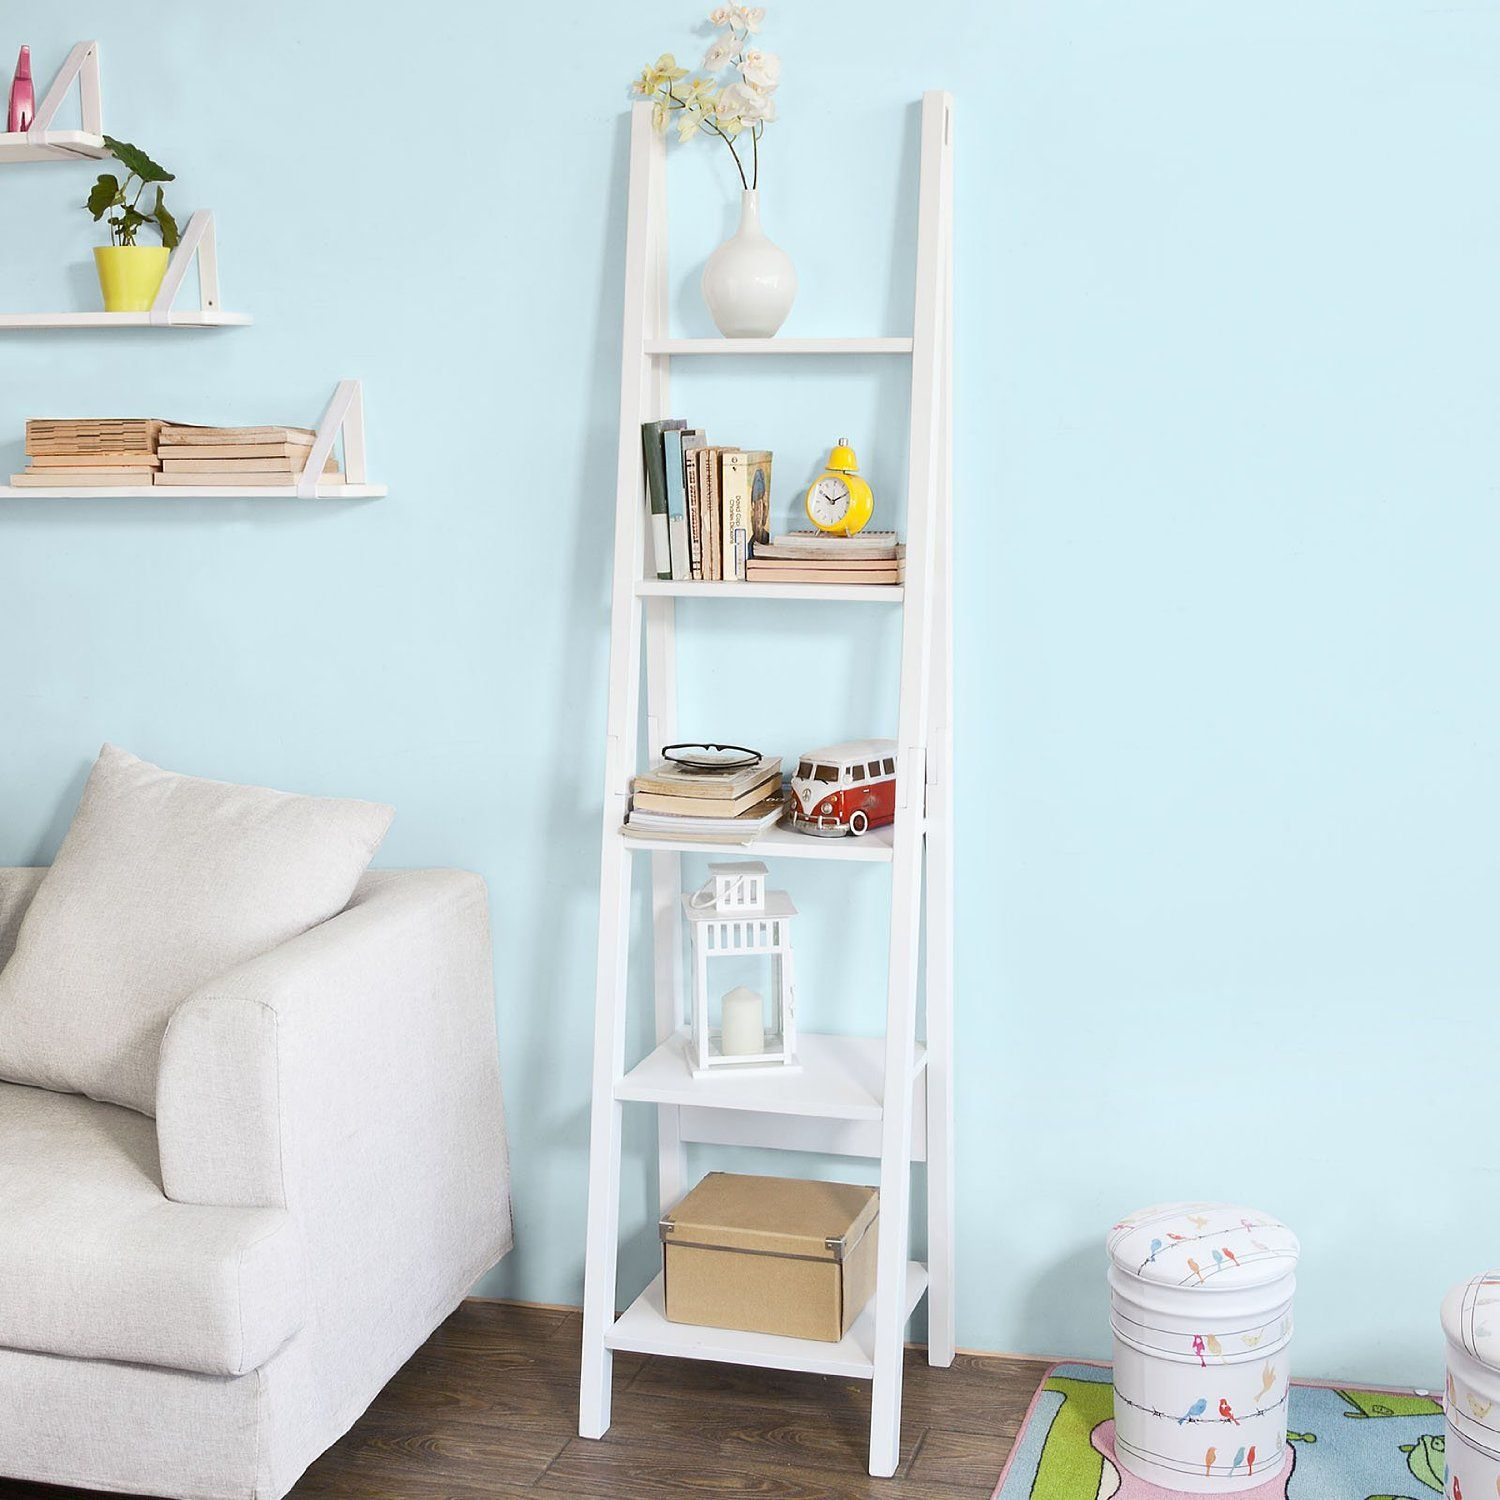 Sobuy Home Wood Storage Rack Display Wall Shelves Bookcase White